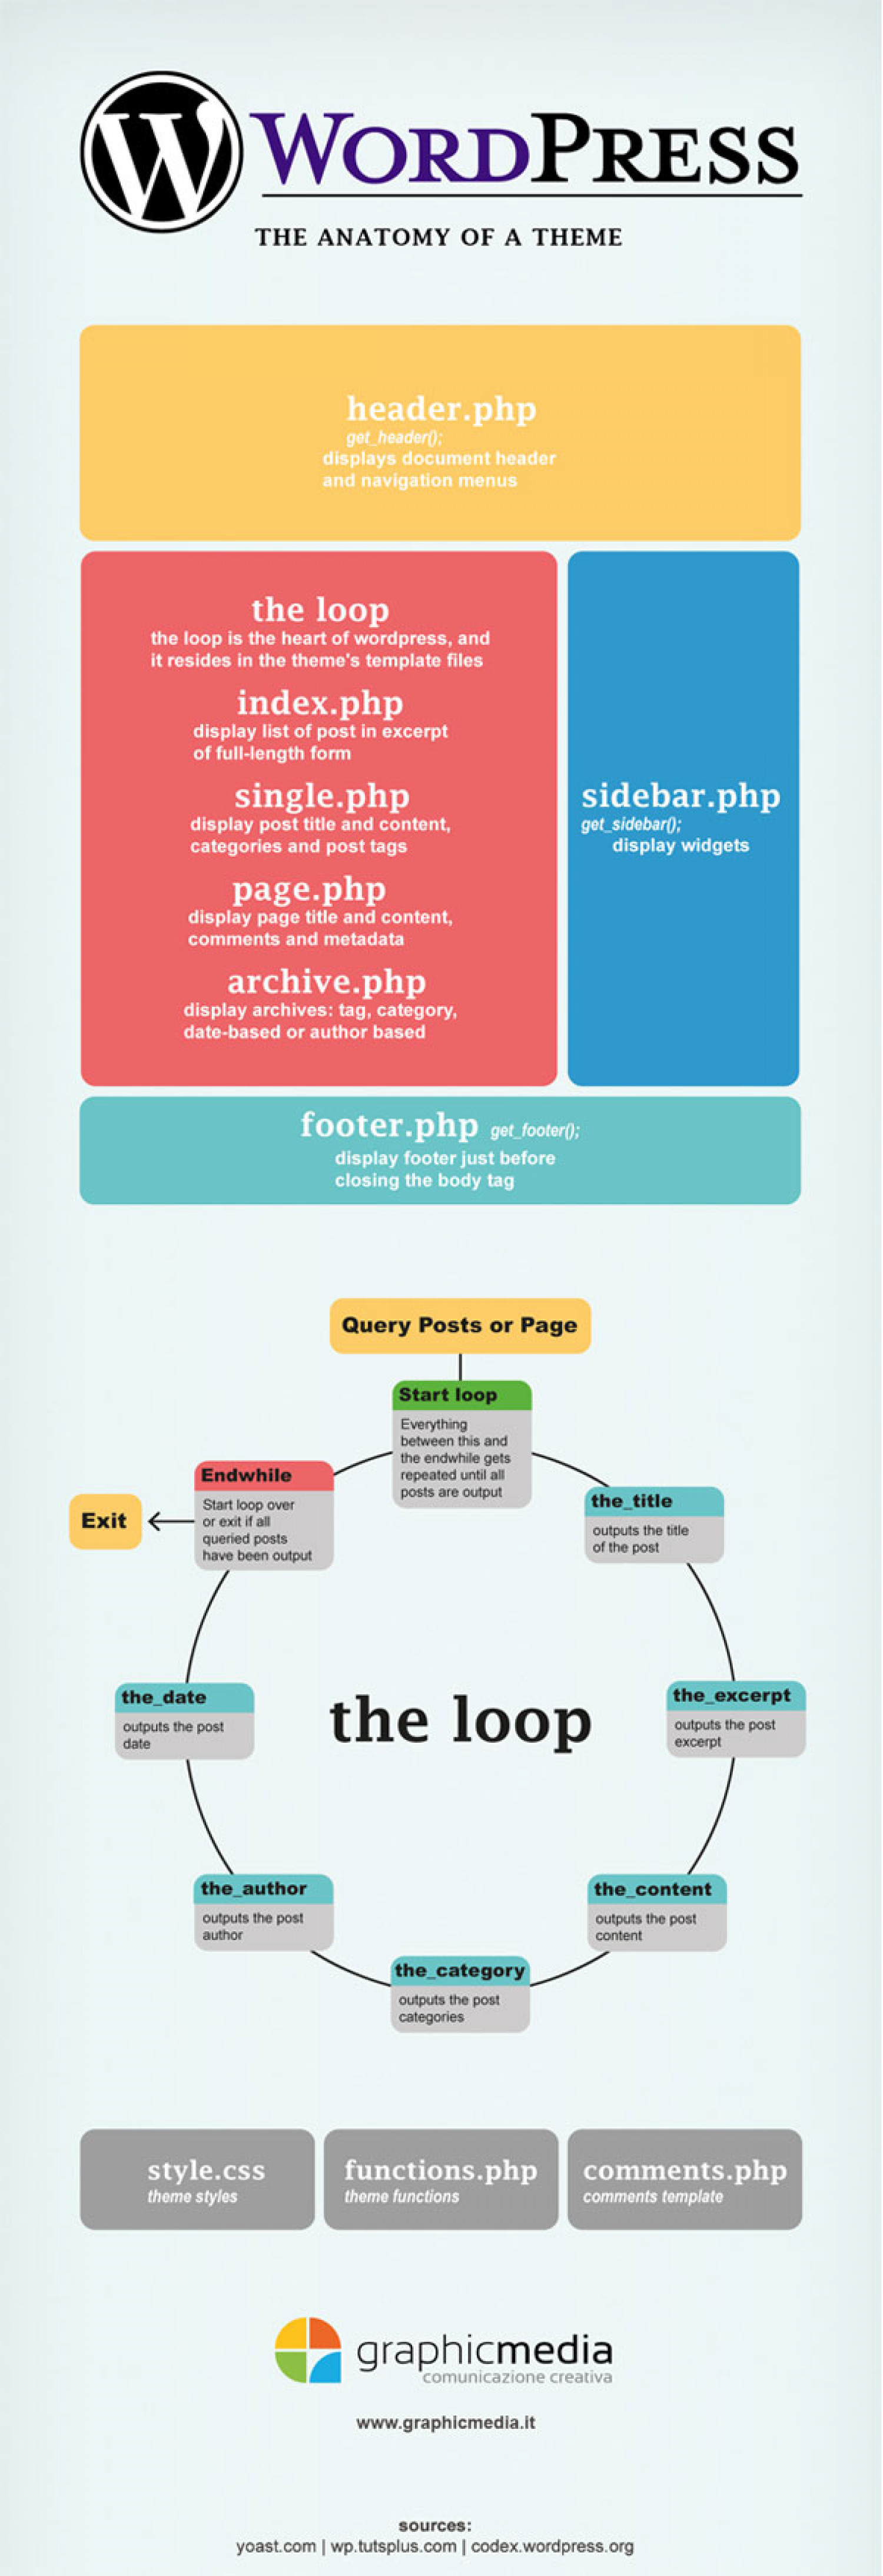 WordPress theme anatomy Infographic